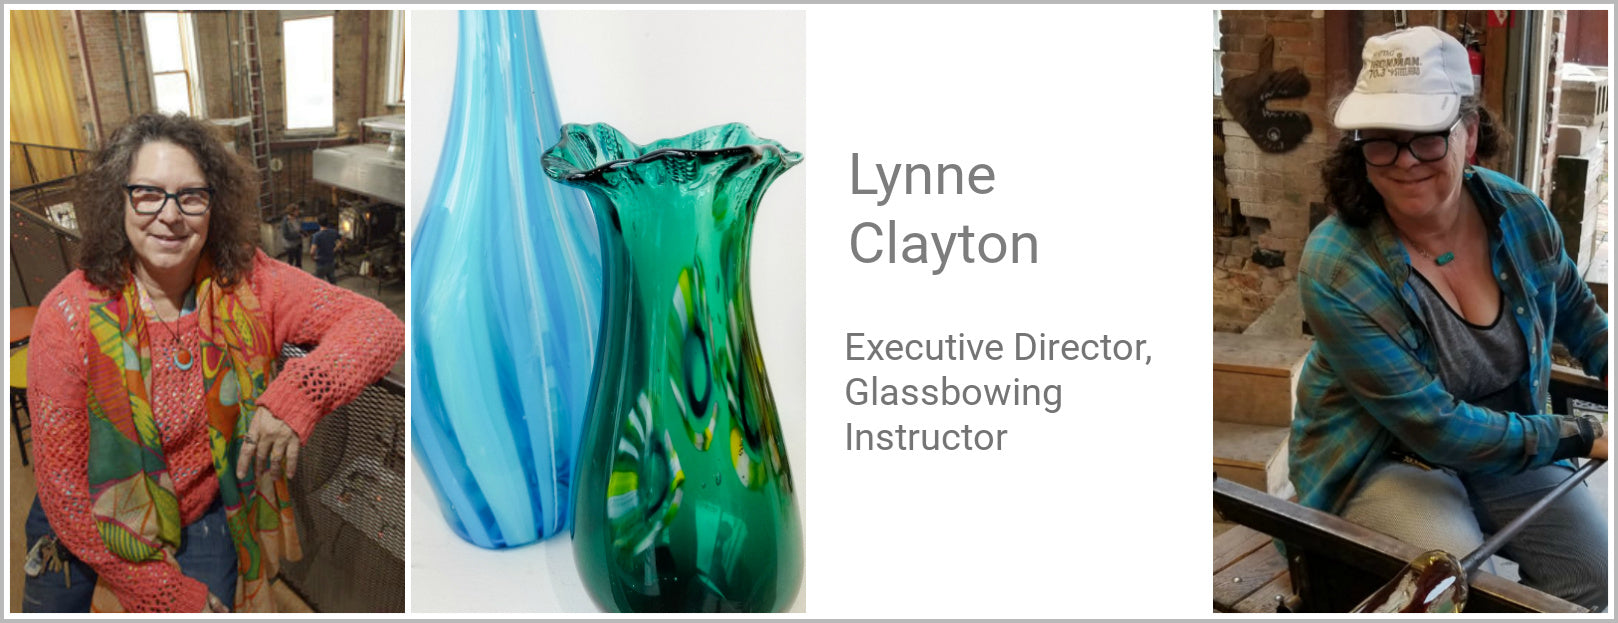 Lynne Clayton, Executive Director